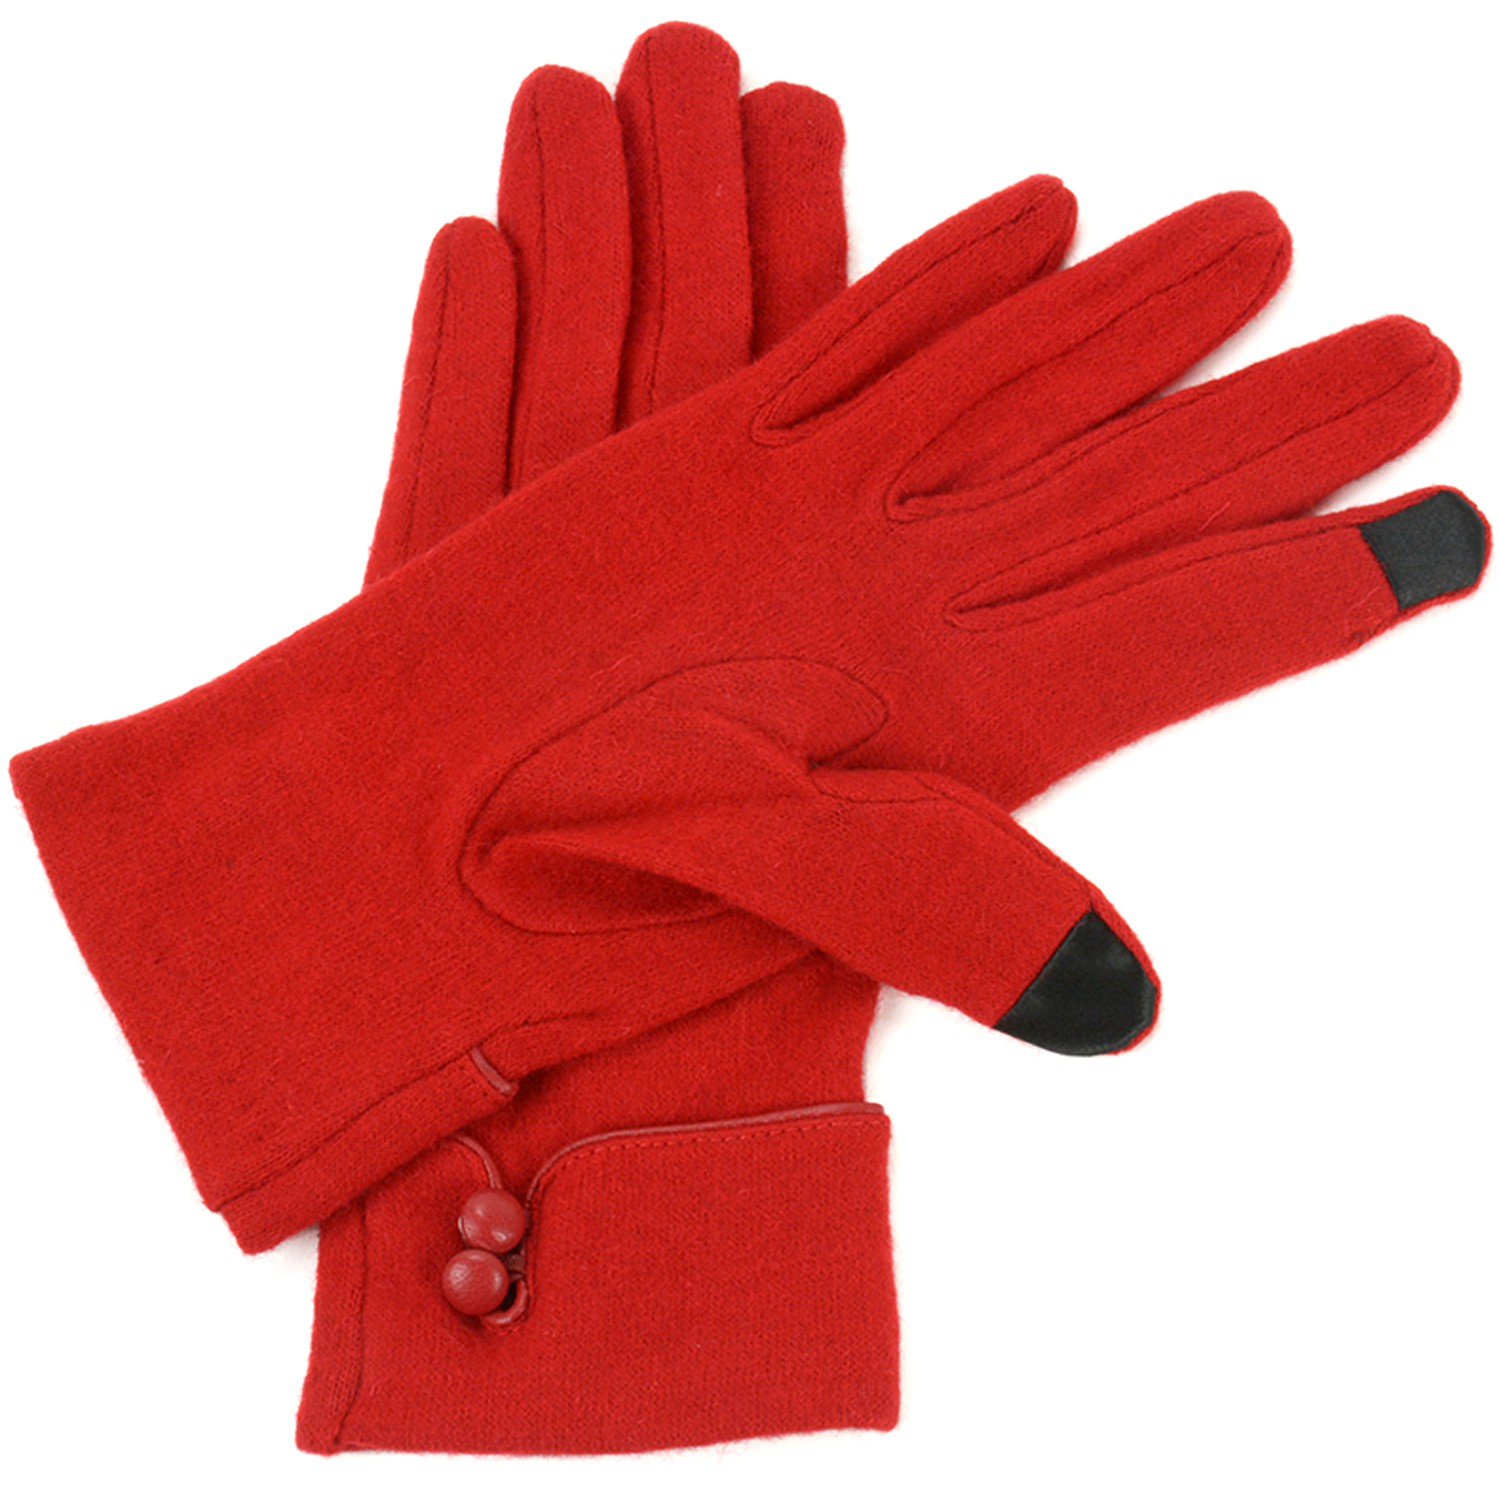 Alpine-Swiss-Womens-Wool-amp-Leather-Trim-Touch-Screen-Texting-Dress-Button-Gloves thumbnail 18